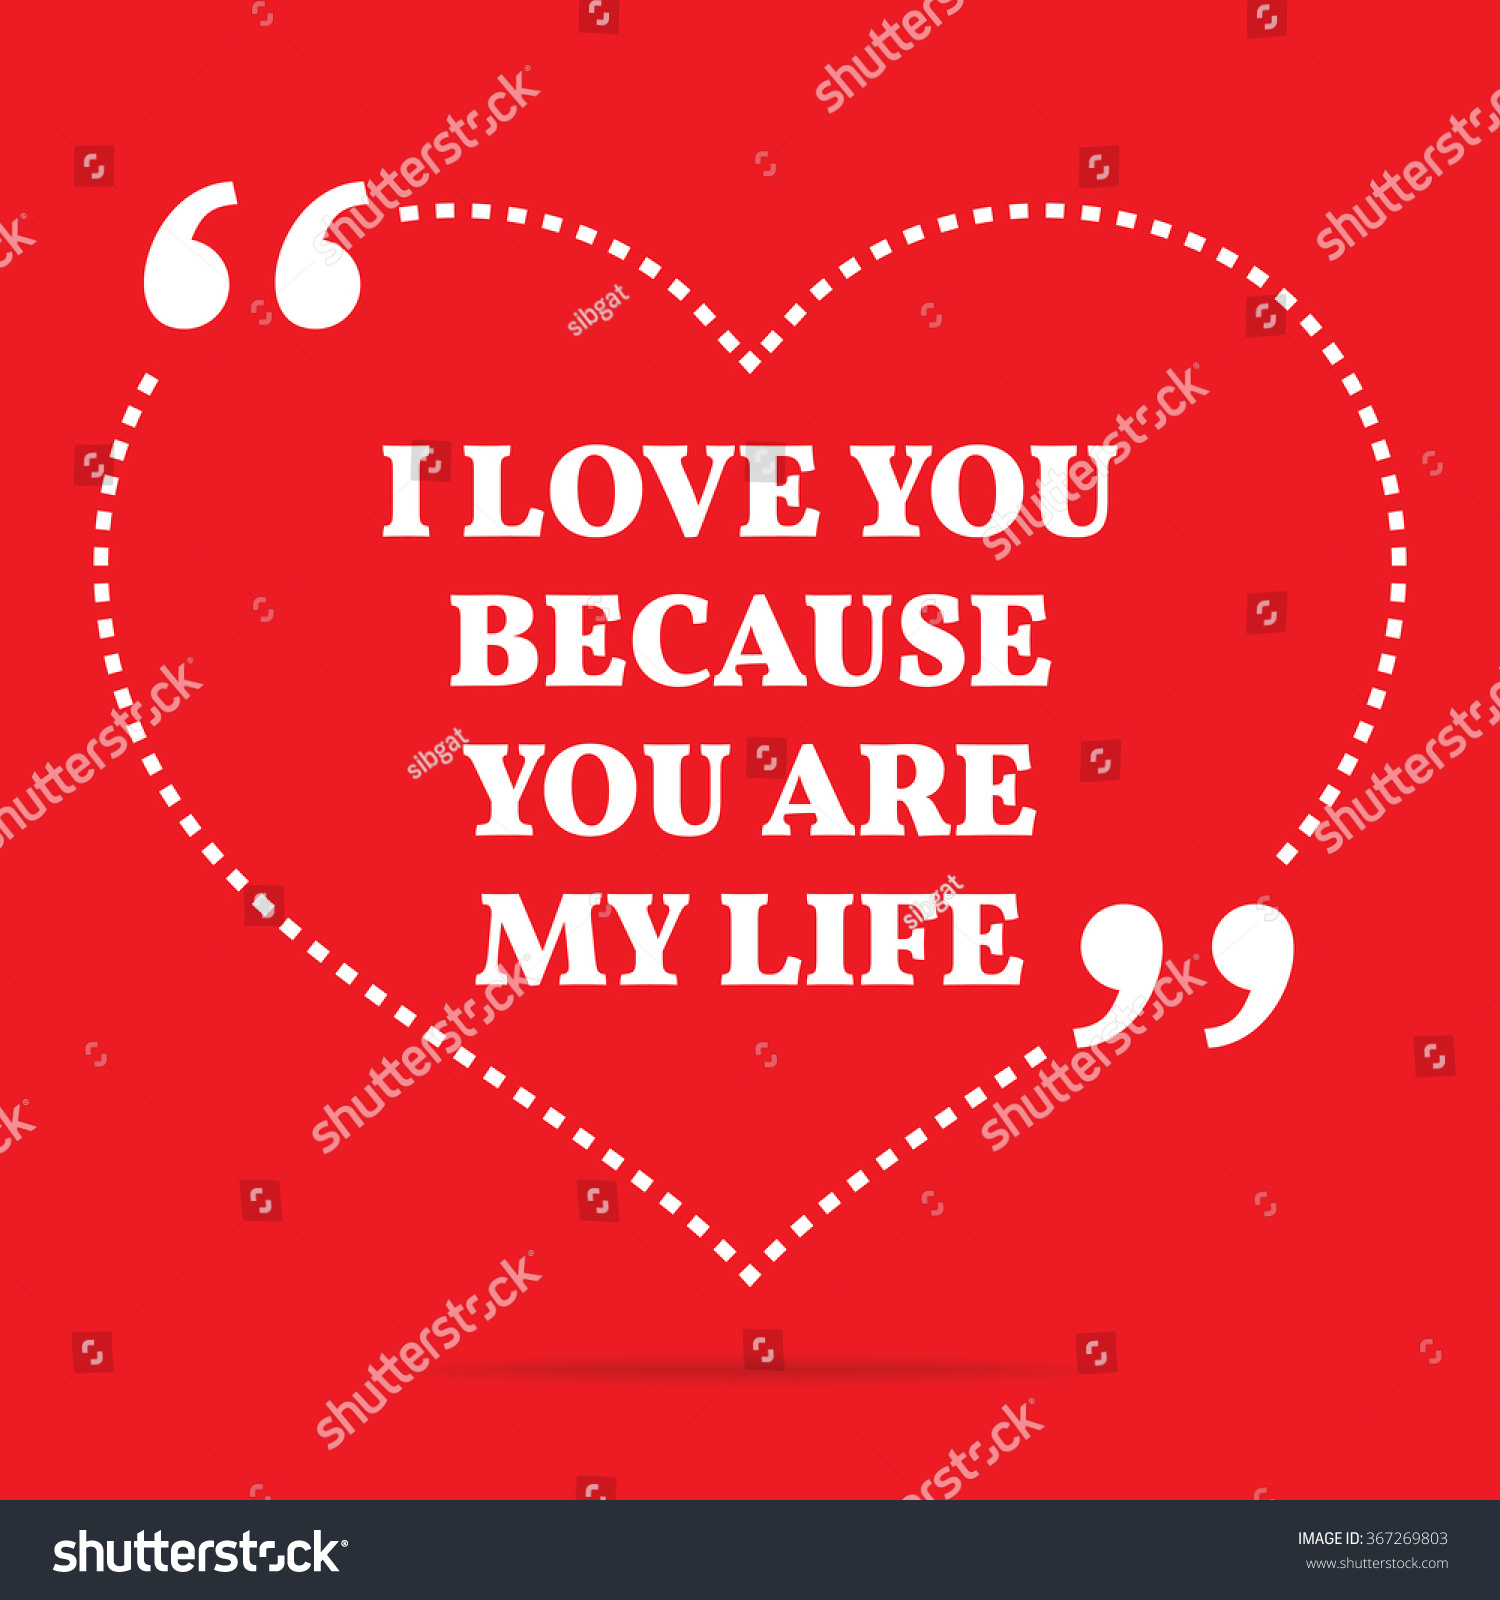 I Love You Because Quotes Inspirational Love Quote Love You Because Stock Vector 367269803